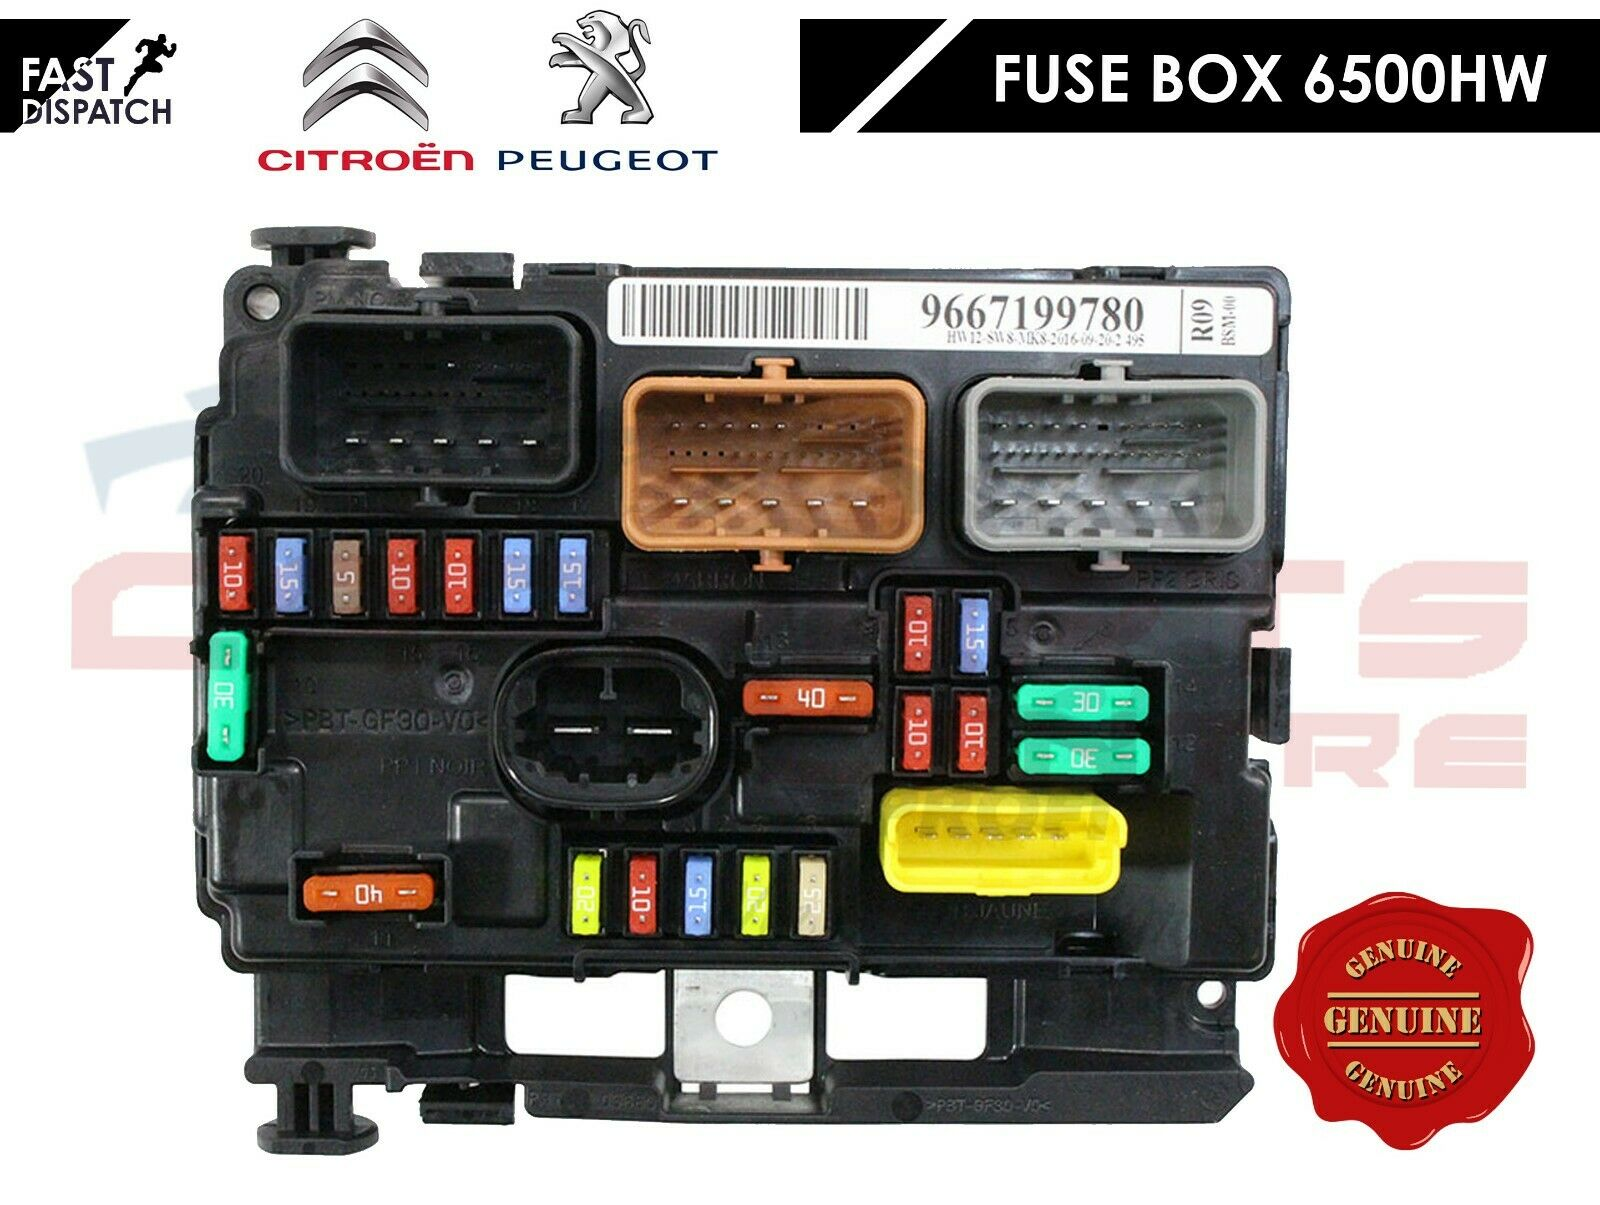 FITS PEUGEOT 207 CITROEN C3 PICASSO ELECTRONIC CONTROL ENGINE FUSE BOX  6500HW | eBay | Citroen Picasso Engine Fuse Box |  | eBay